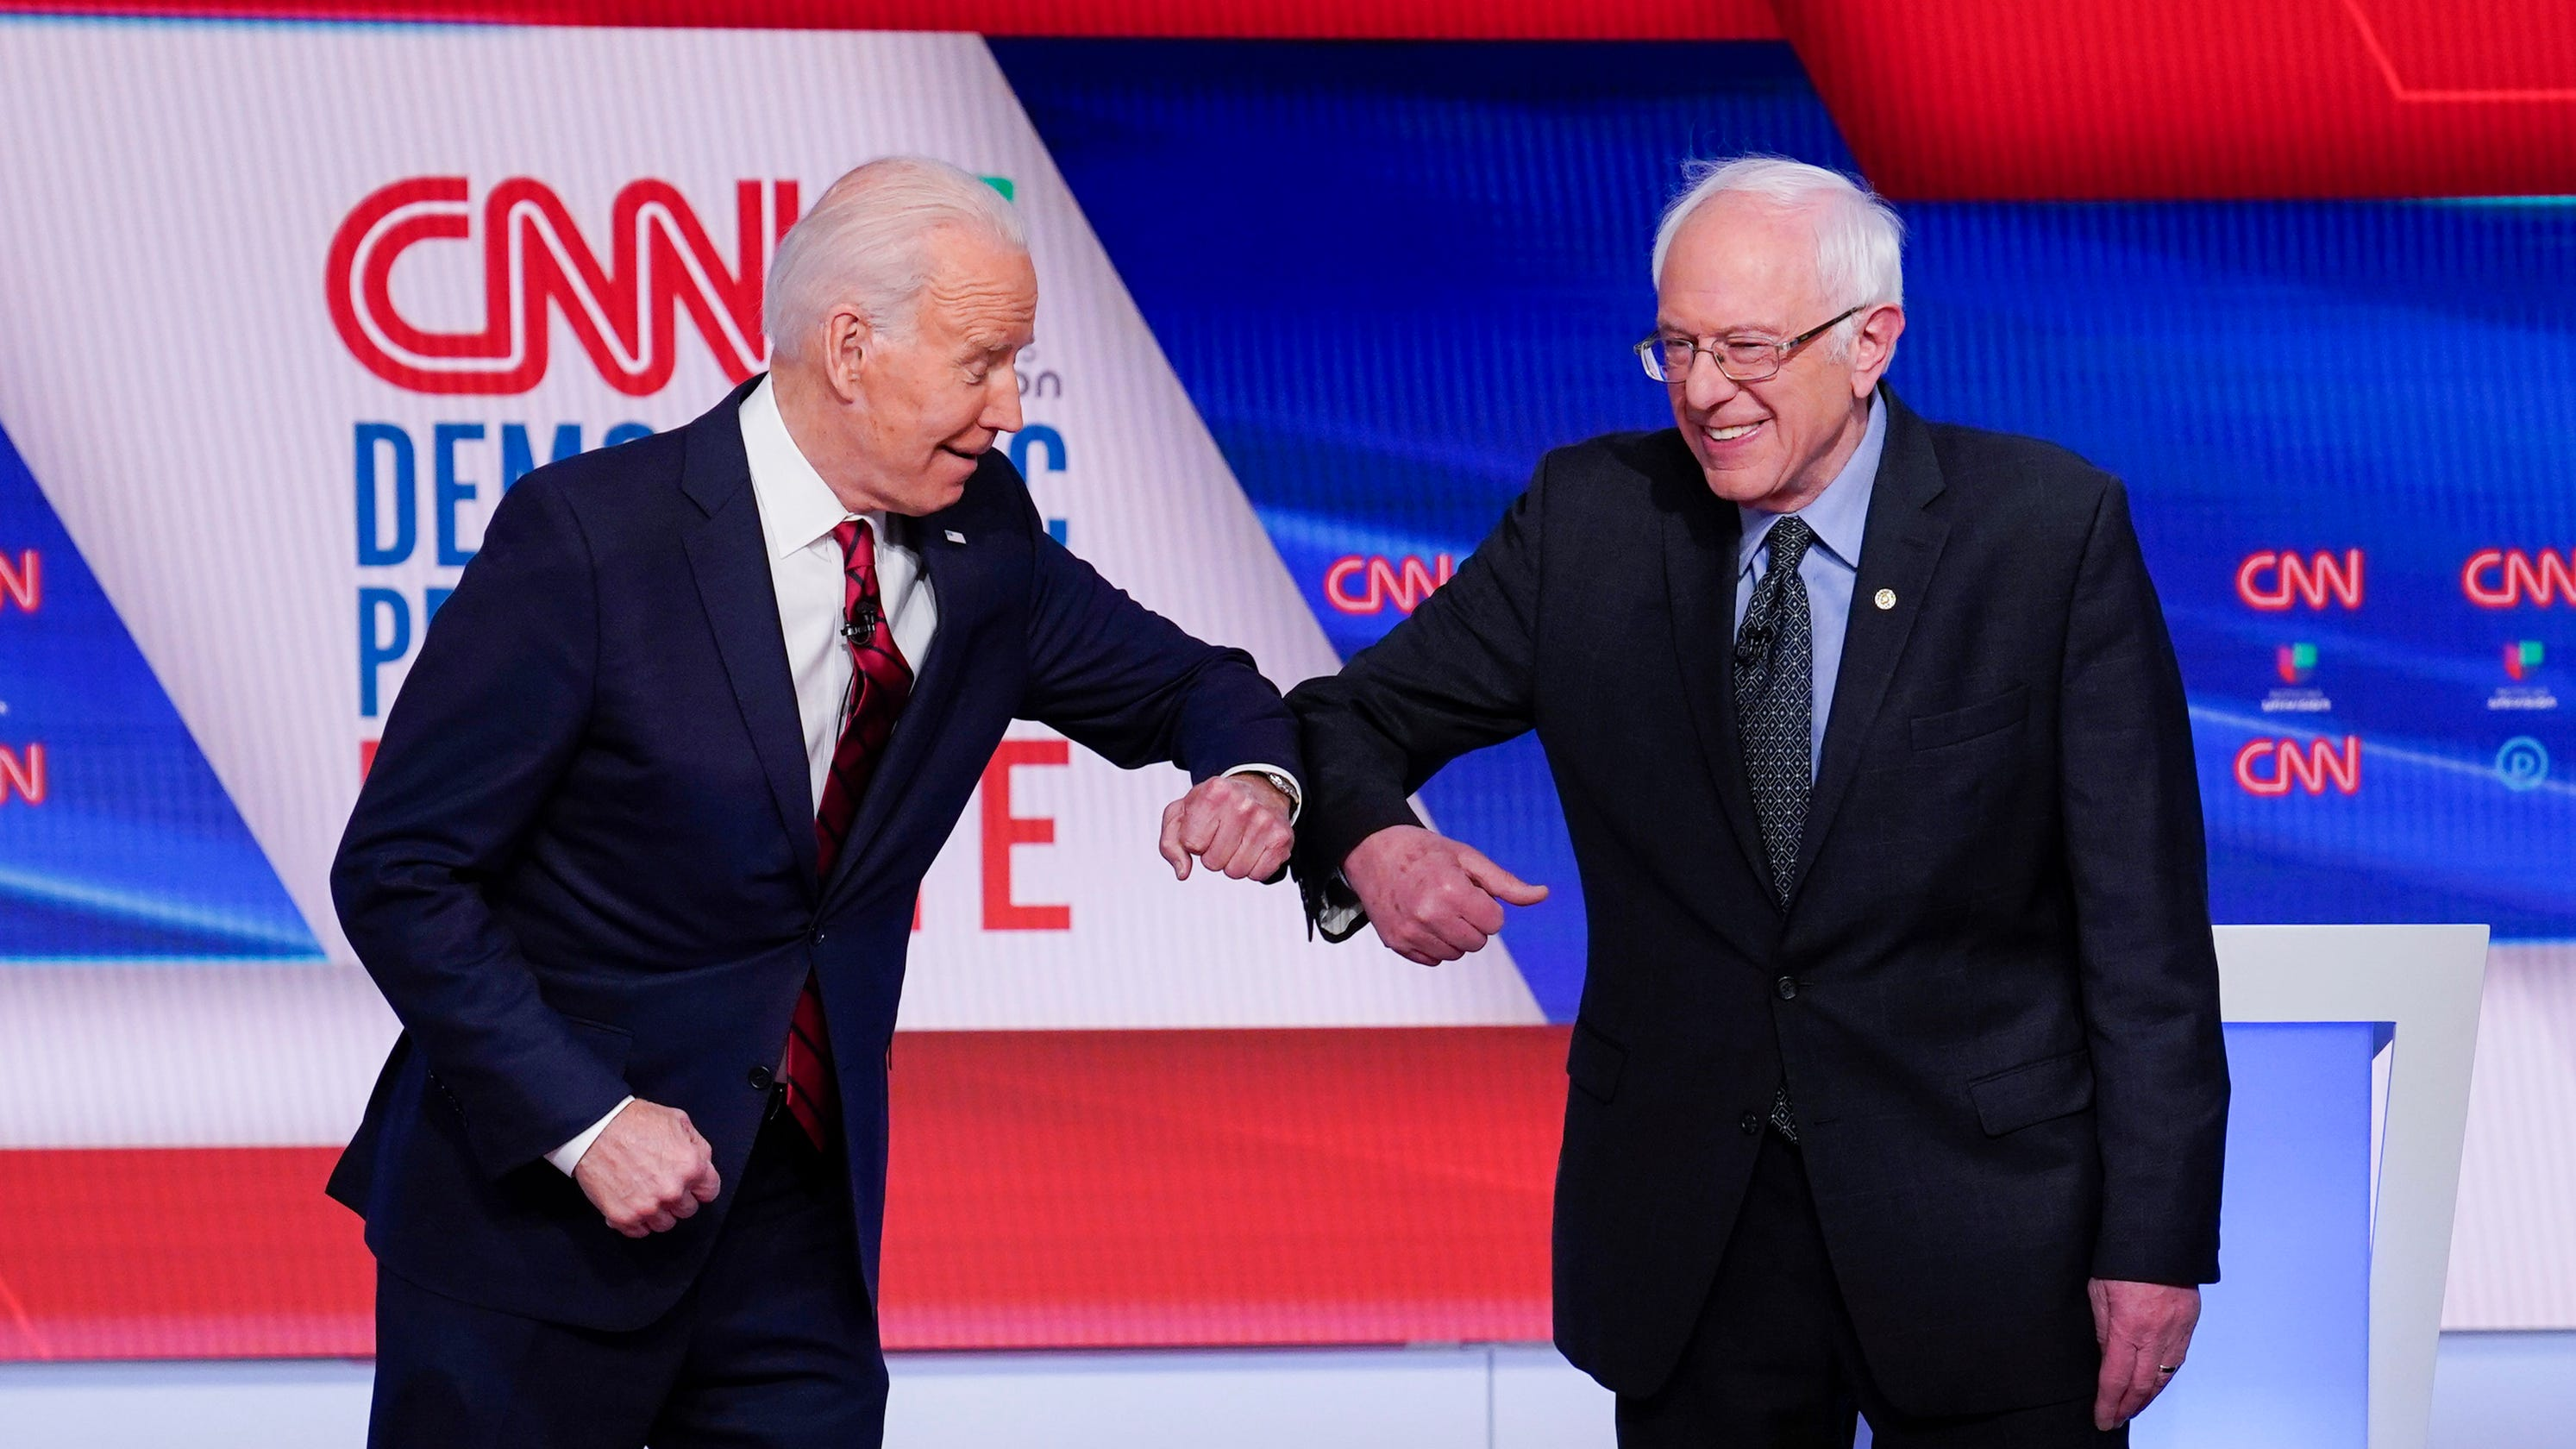 Sanders, Kasich to speak as Democrats look to unite both sides of the aisle